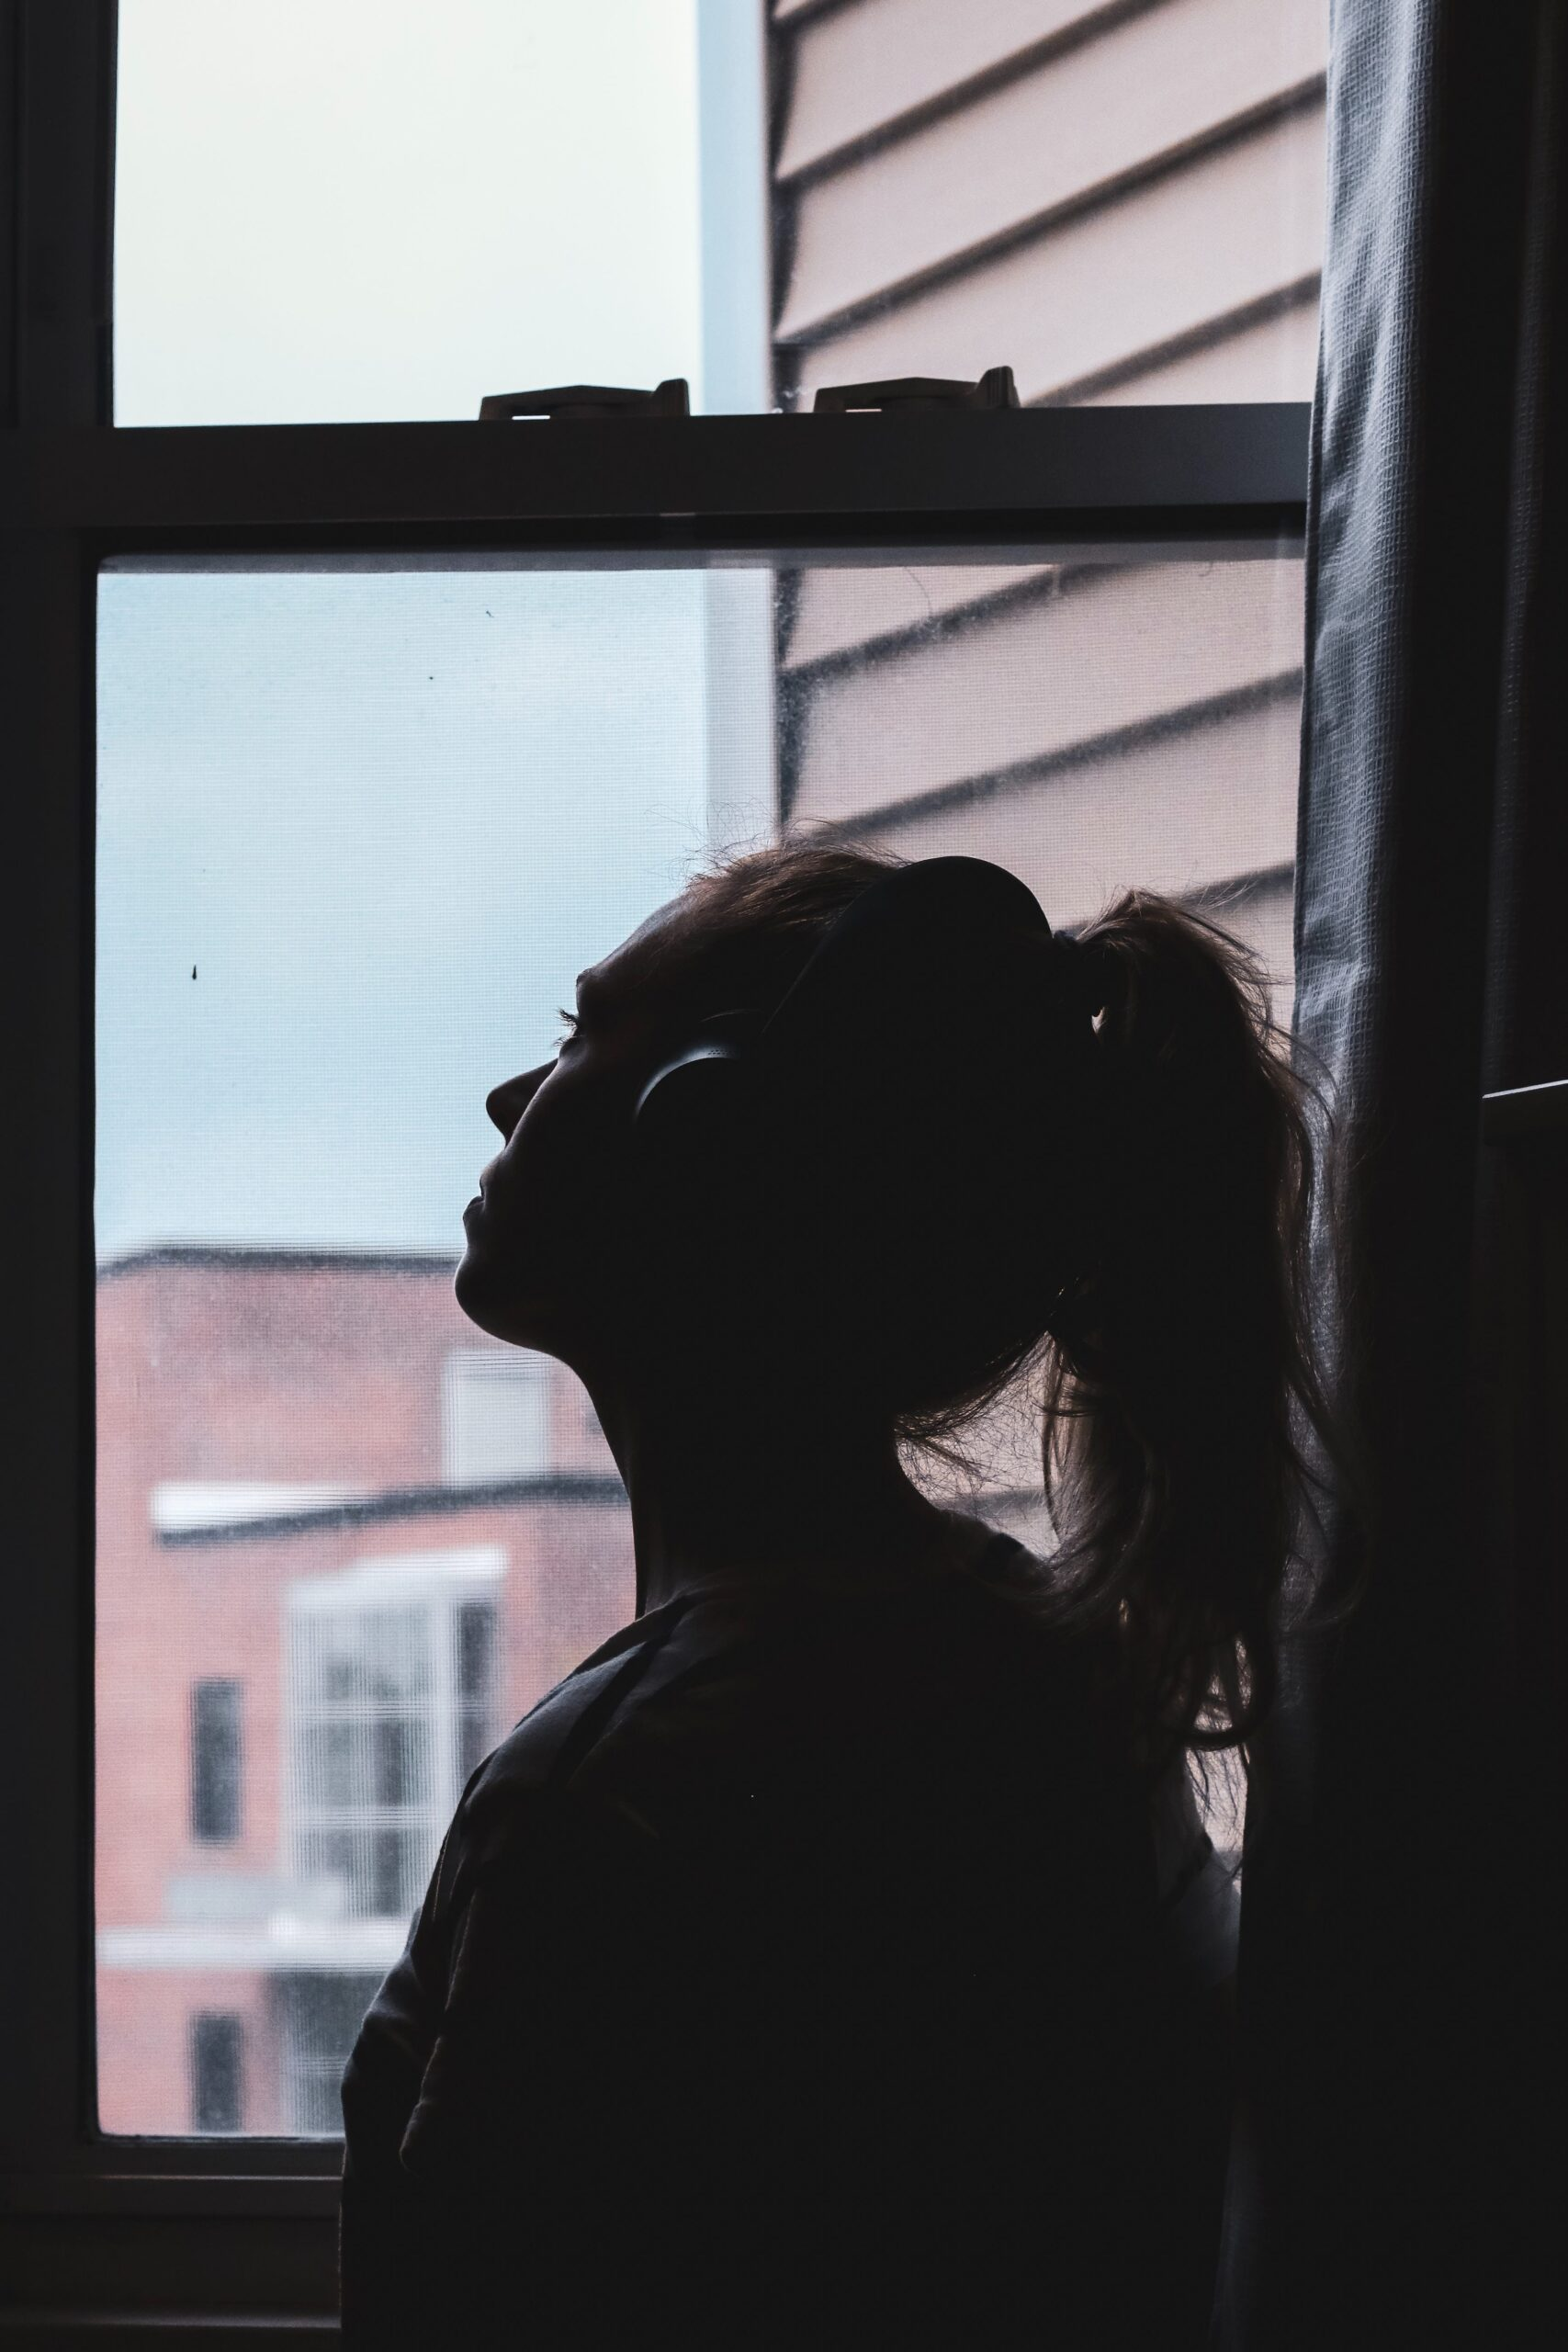 Silhouette of a woman standing in a window